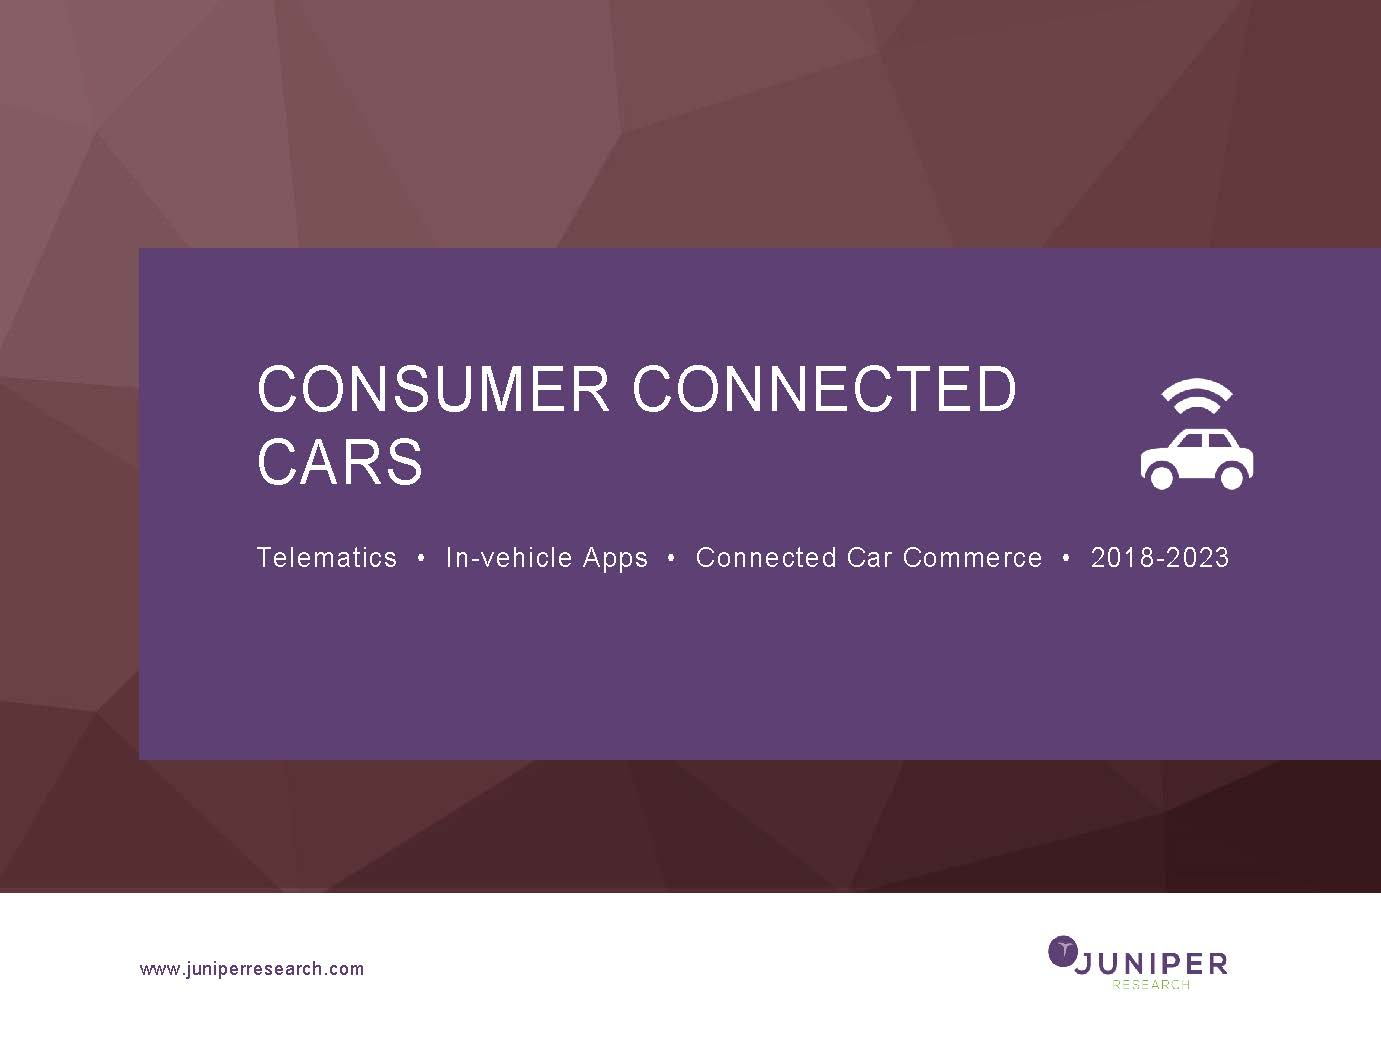 Consumer Connected Cars: Telematics, In-Vehicle Apps & Connected Car Commerce 2018-2023